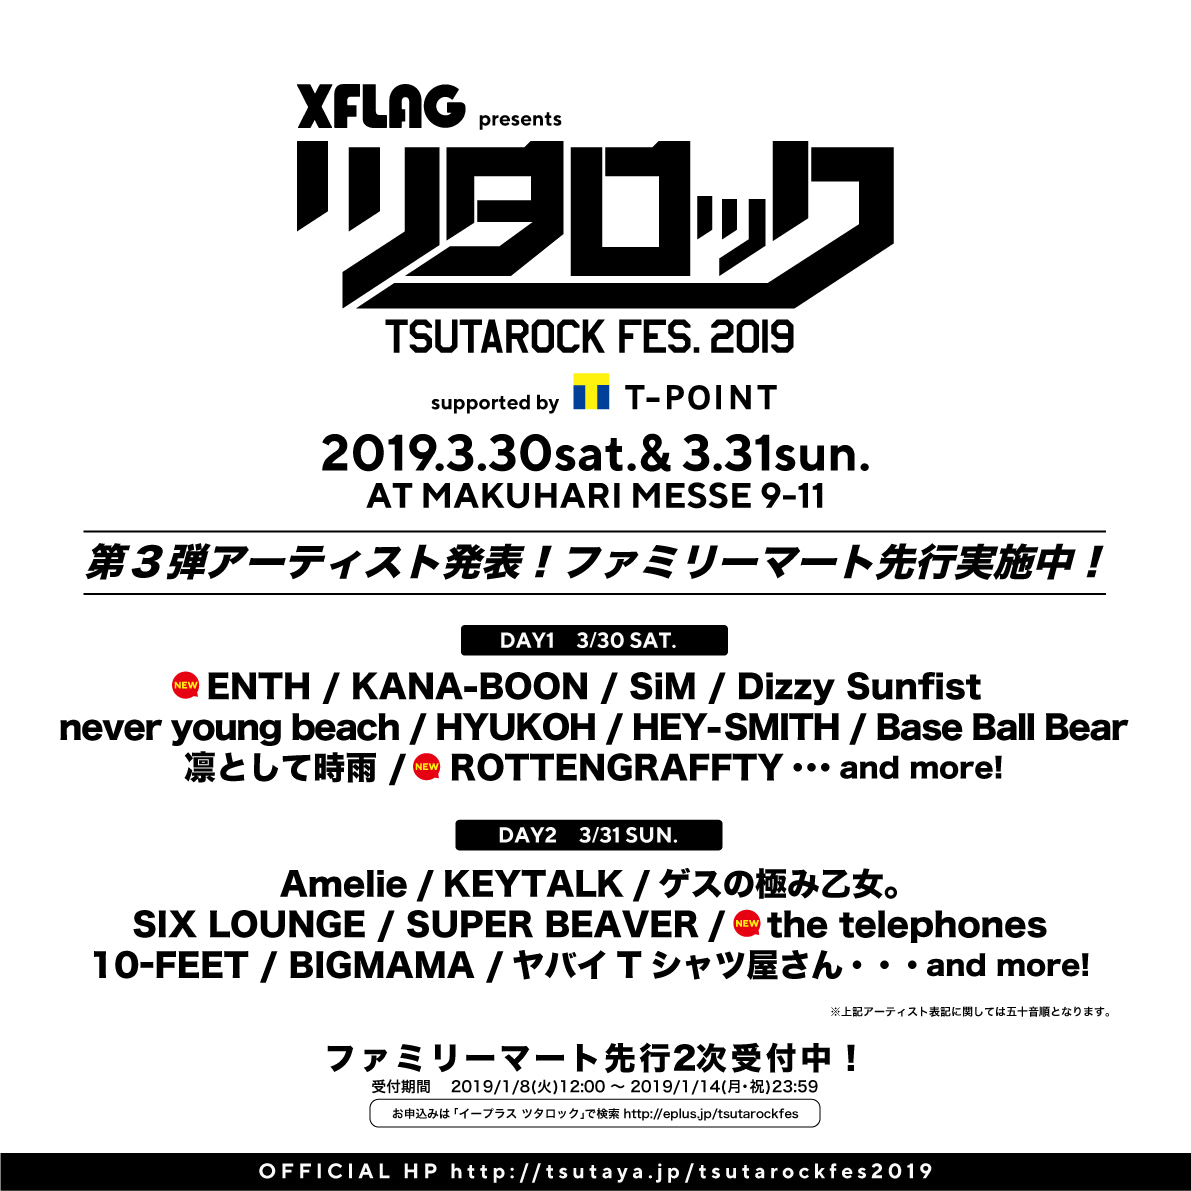 「XFLAG presents ツタロックフェス2019 supported by Tポイント」フライヤー